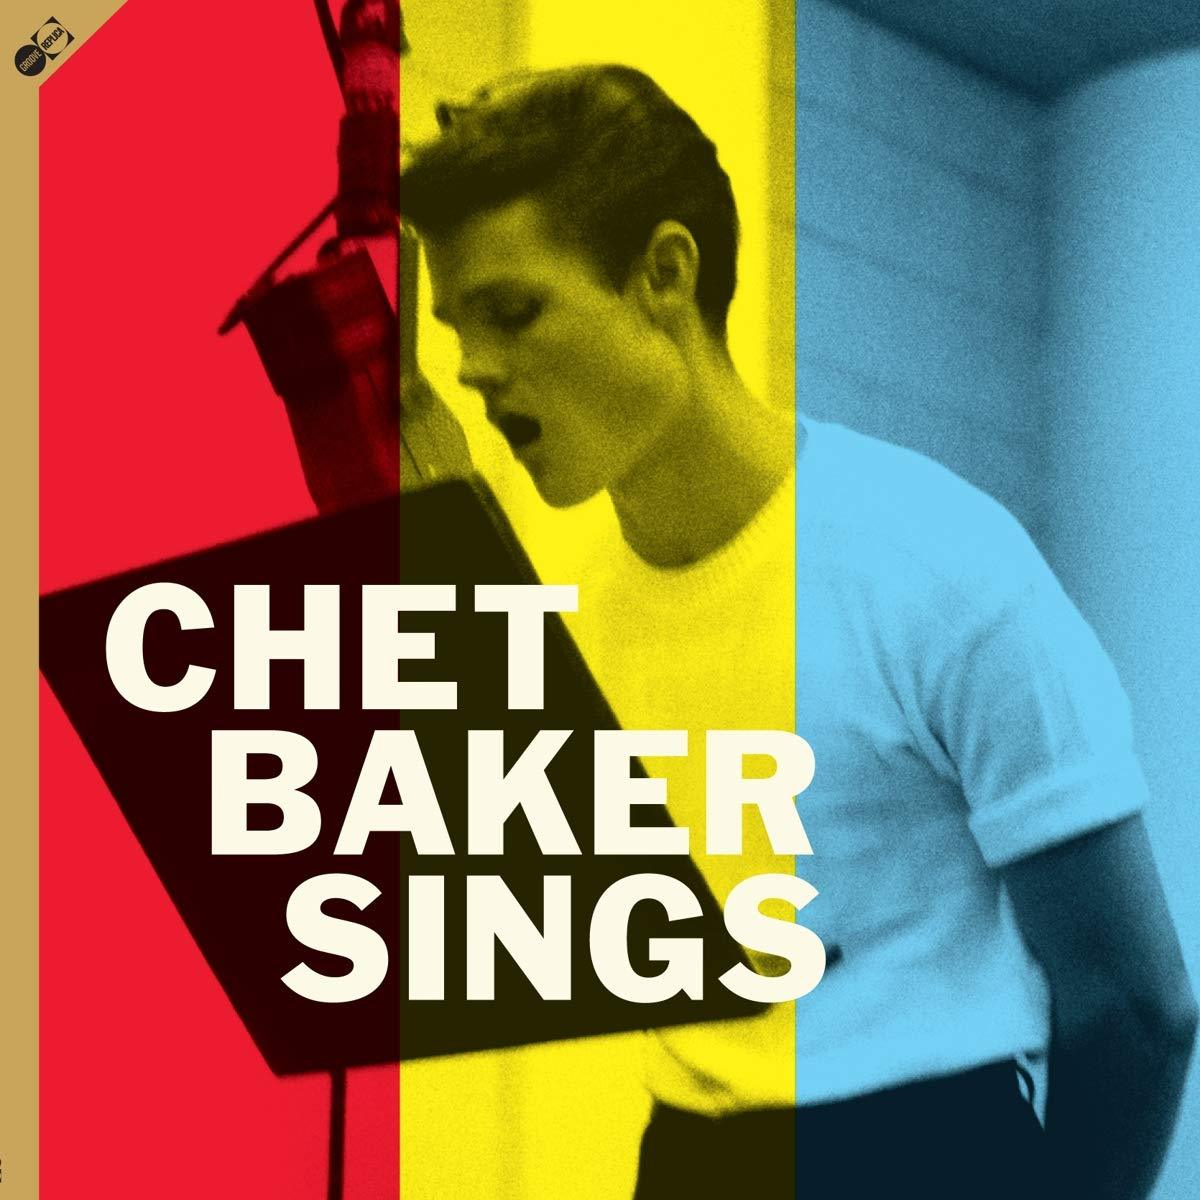 Chet Baker - Sings [2LP] (180 Gram, import) - Urban Vinyl | Records, Headphones, and more.